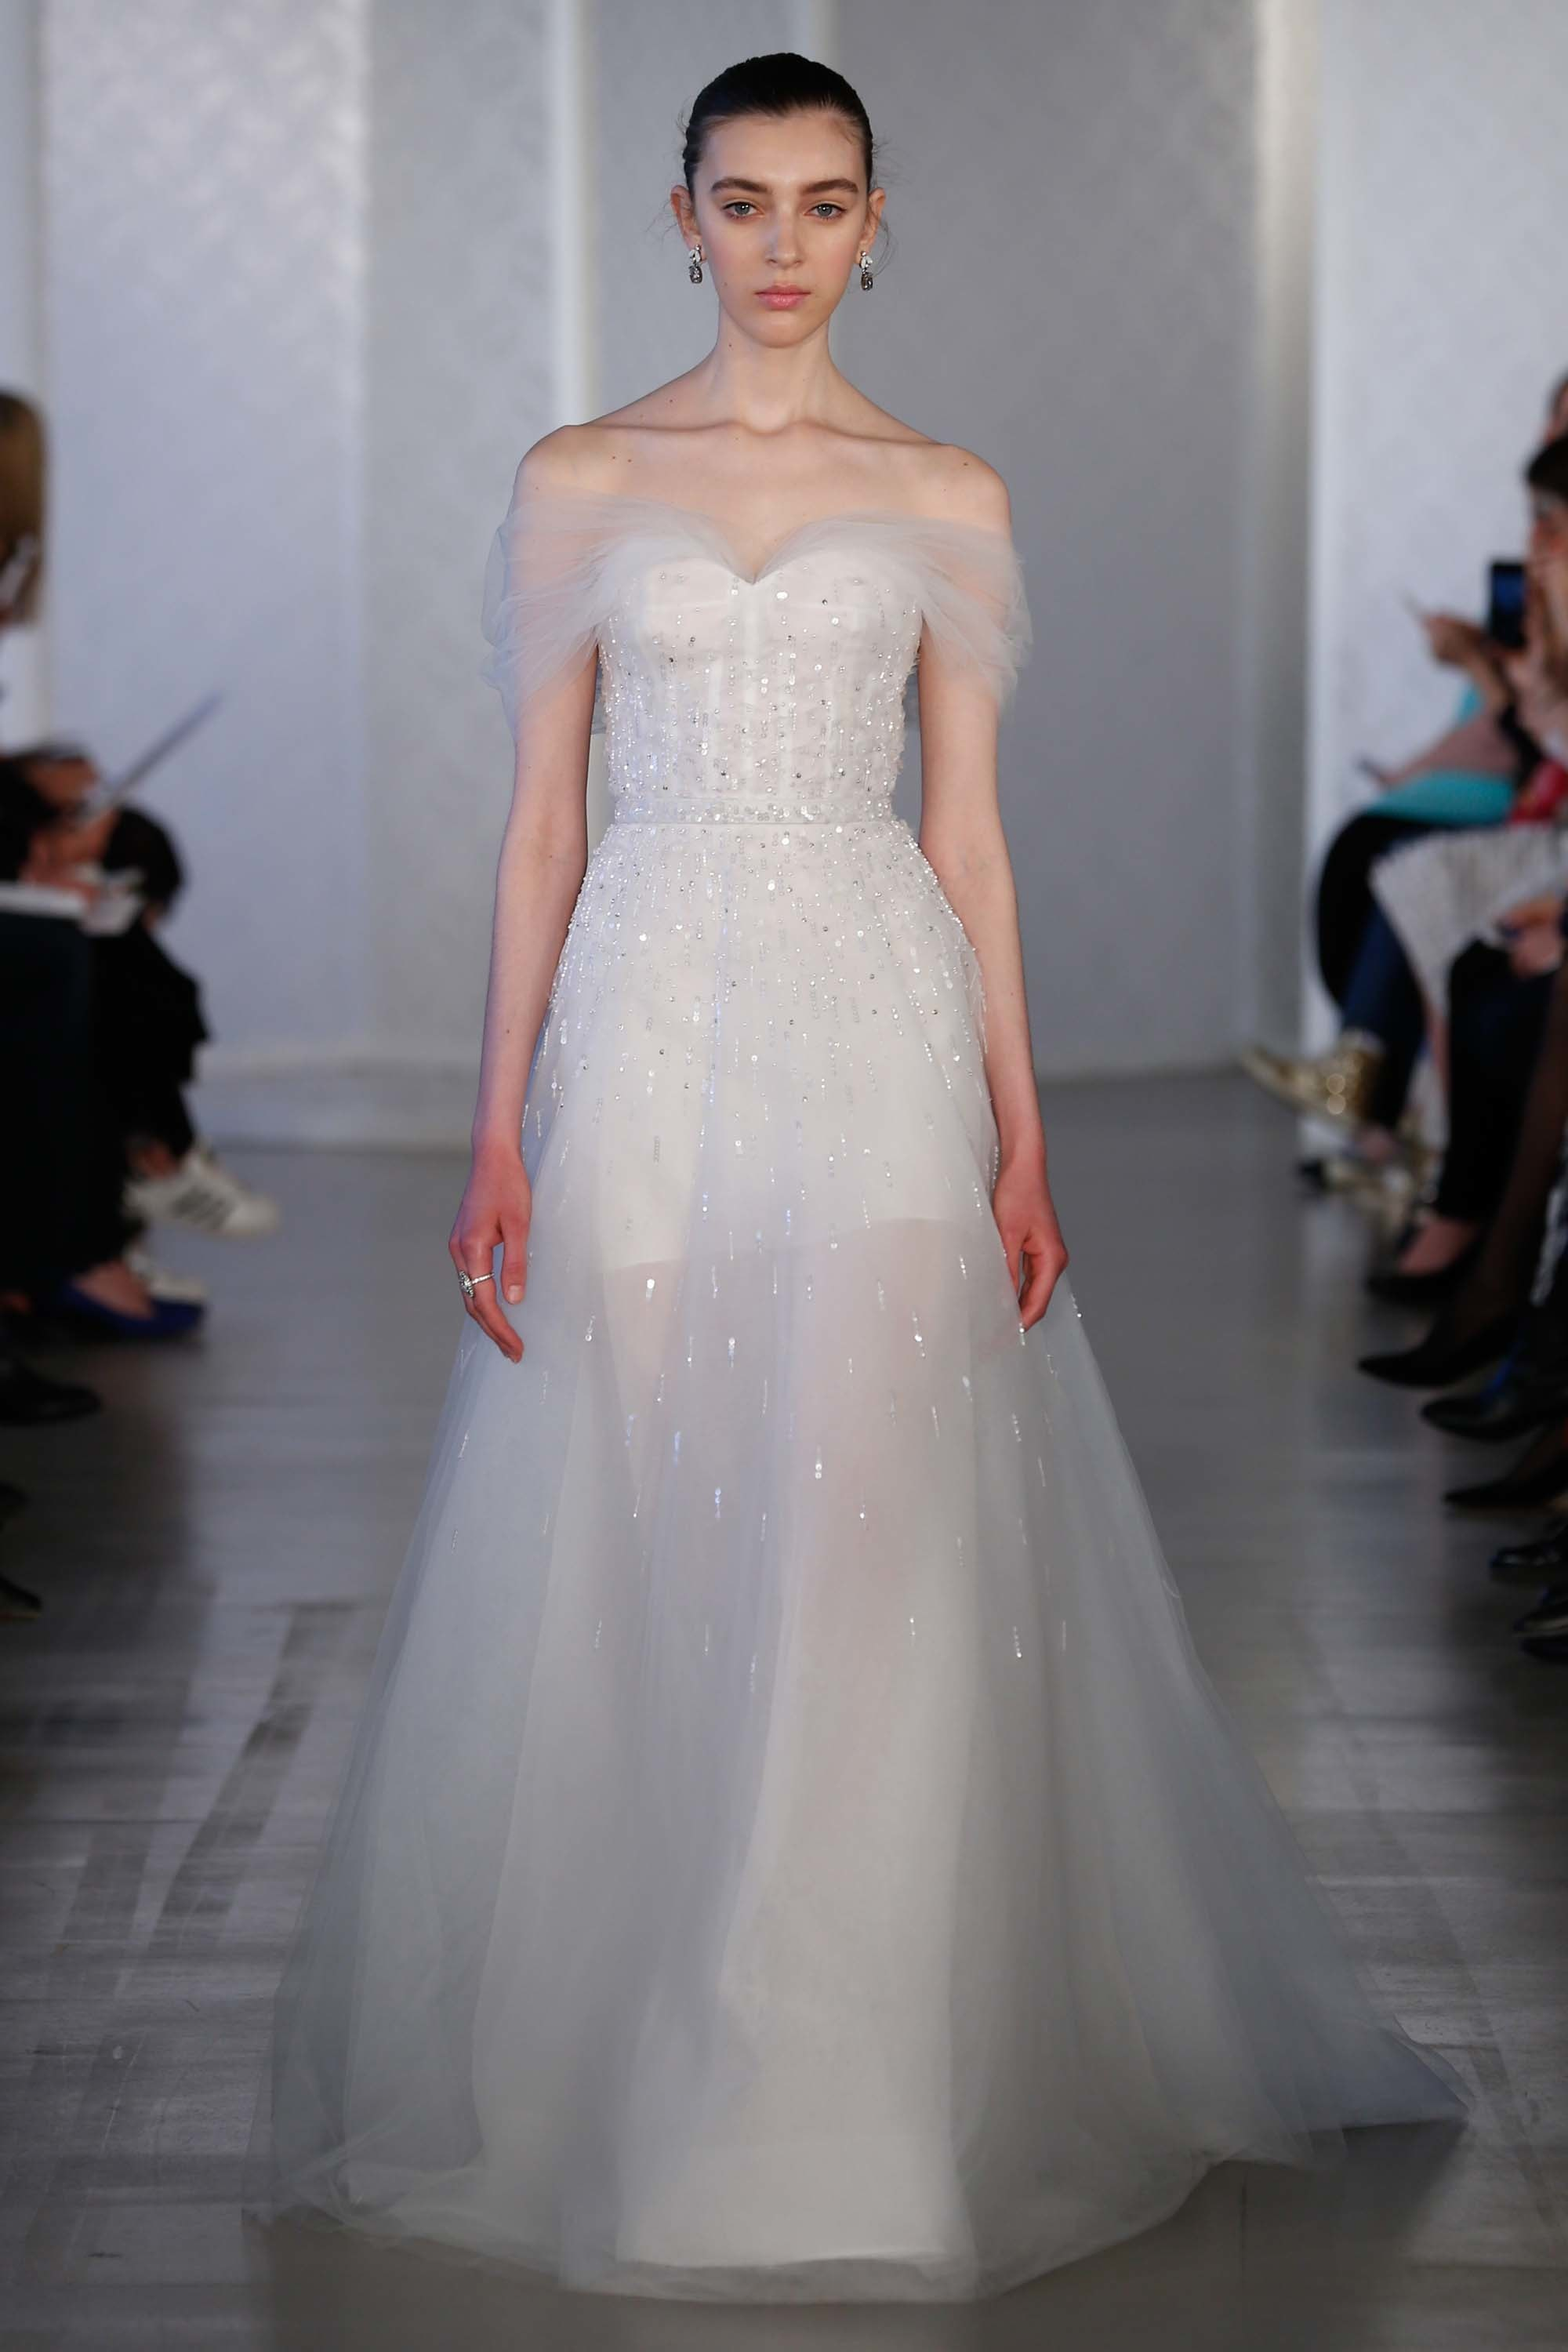 A wedding dress with open shoulders